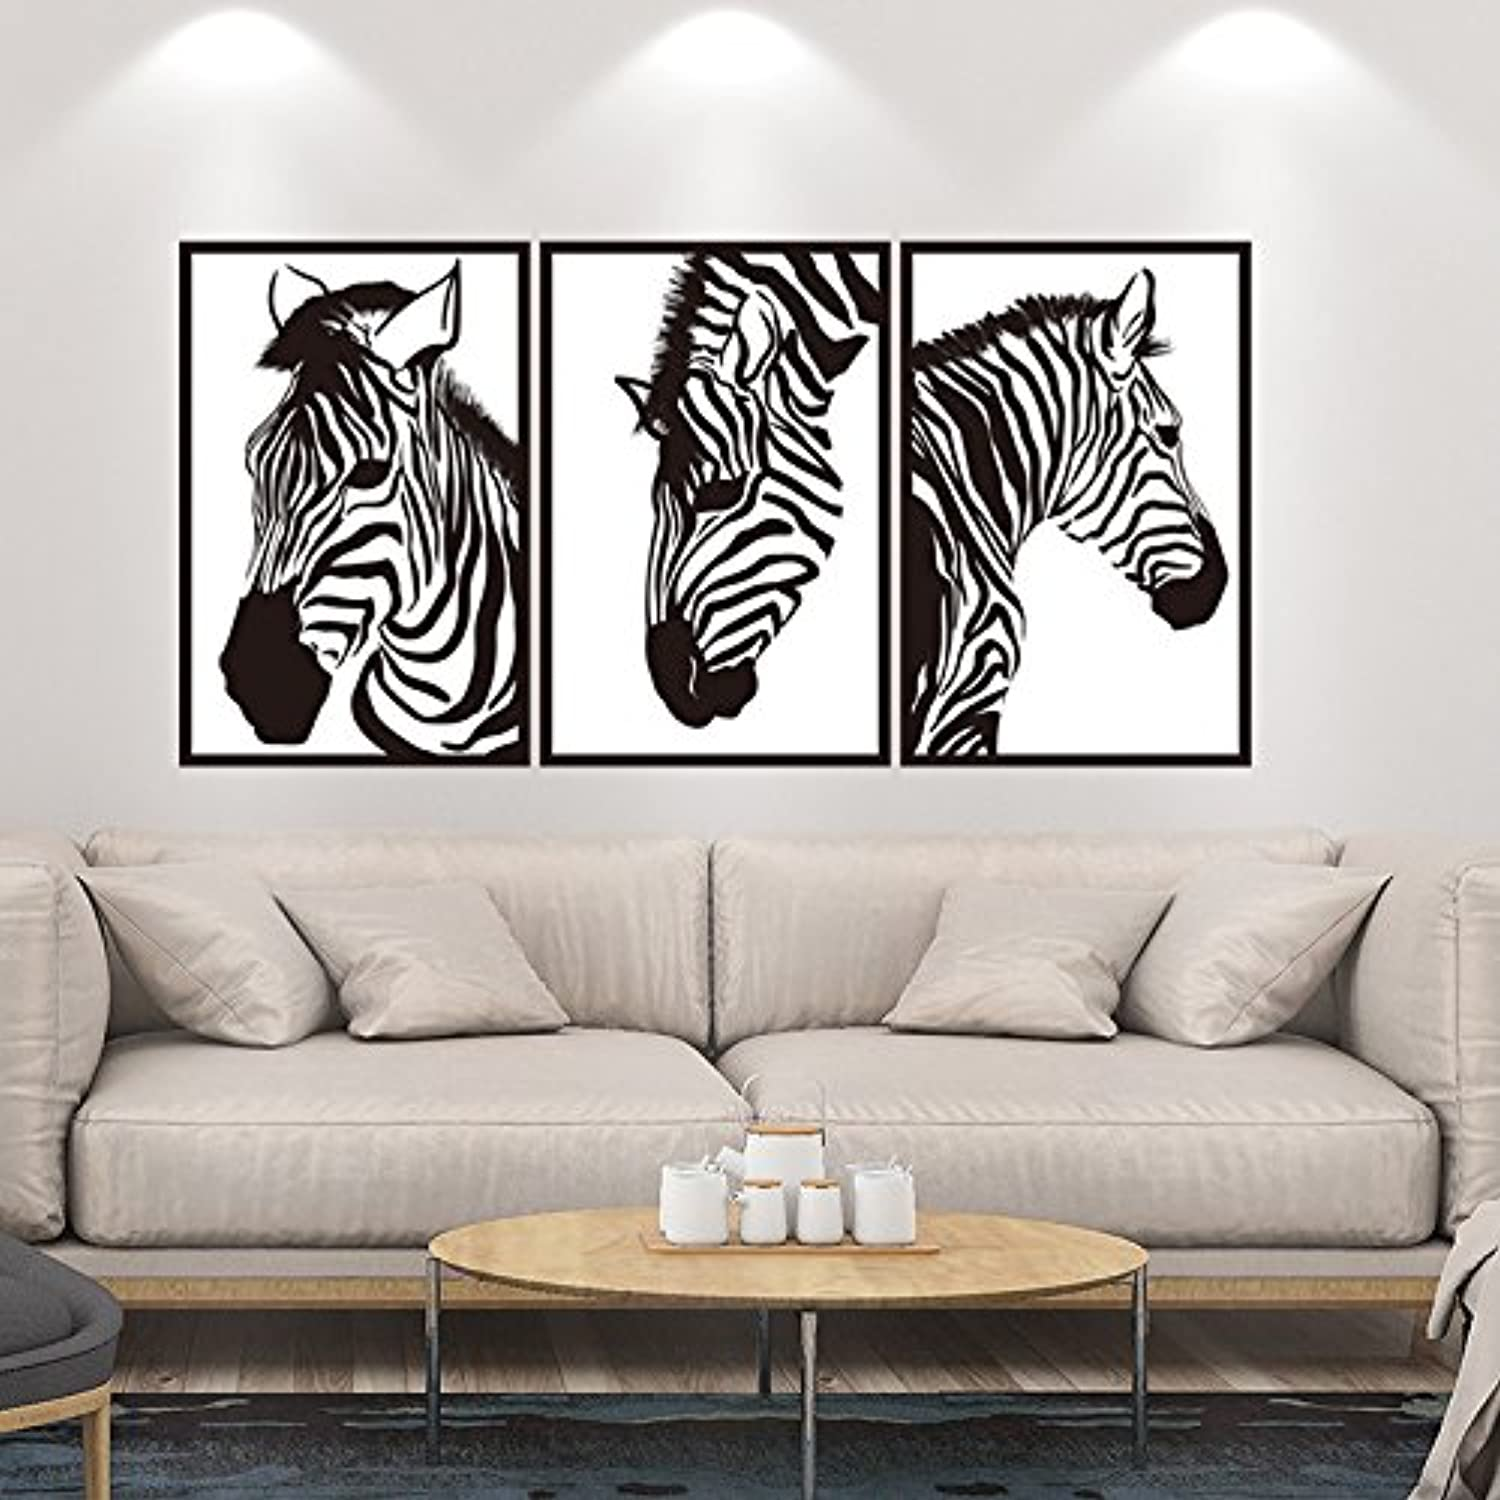 Znzbzt Creative Bedroom Living Room Wall Posters self Adhesive Wall Stickers Wall Decals, Zebra